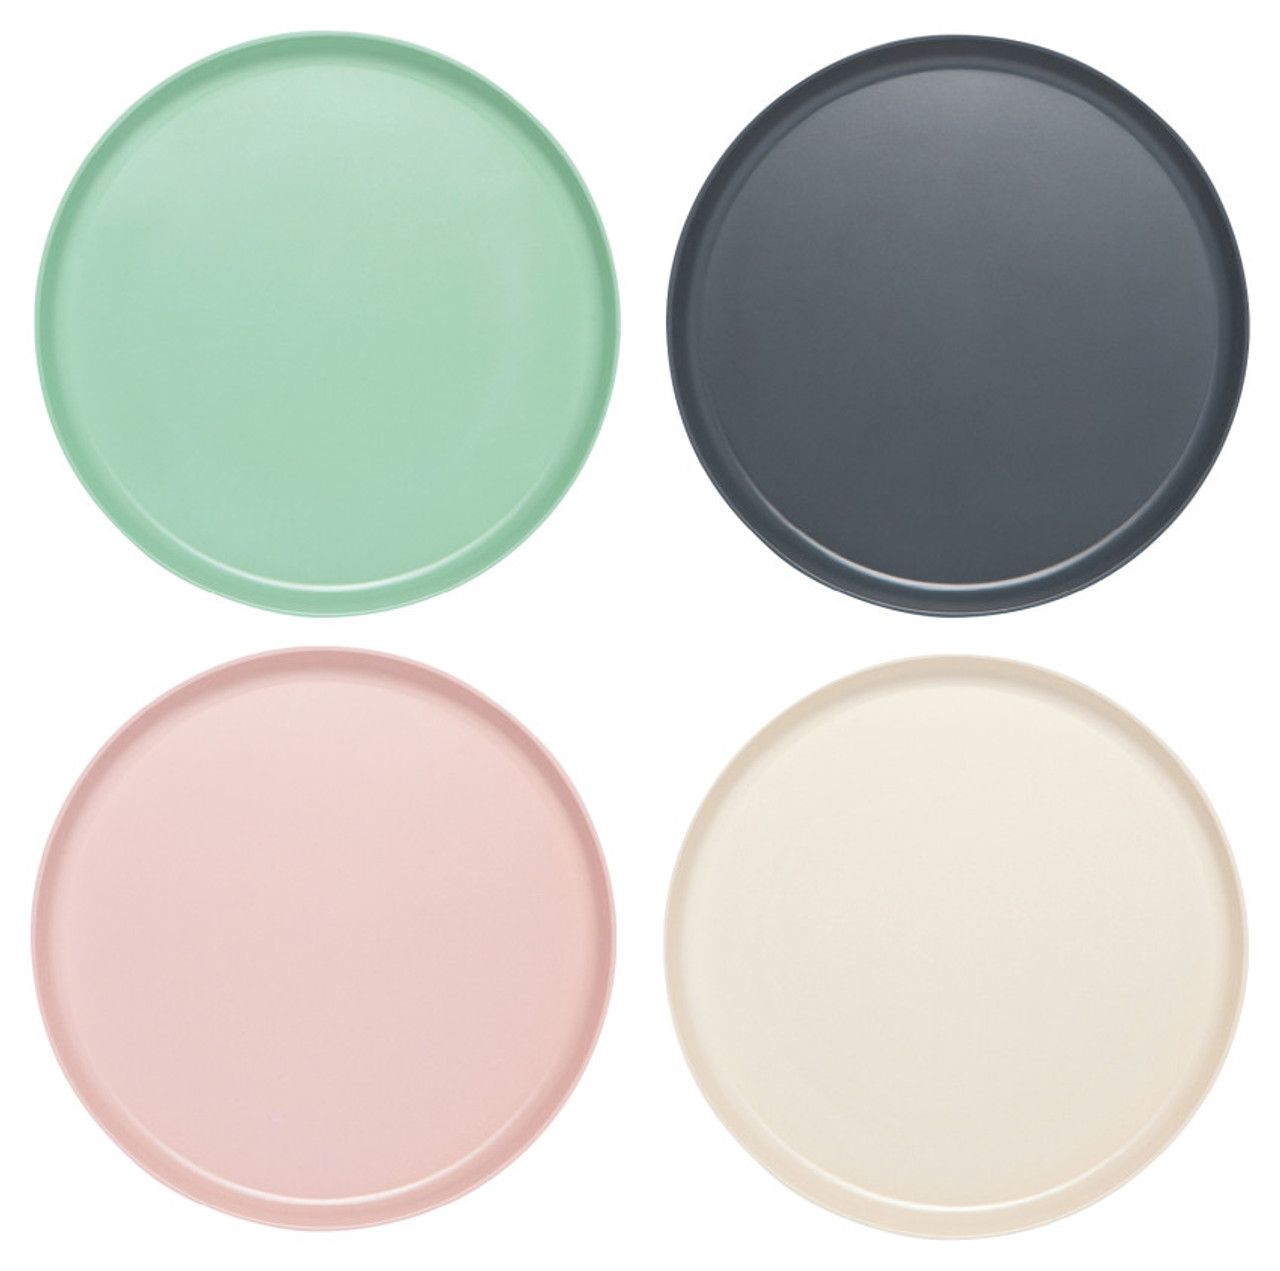 ECOLOGIE DINNER PLATE SET OF 4